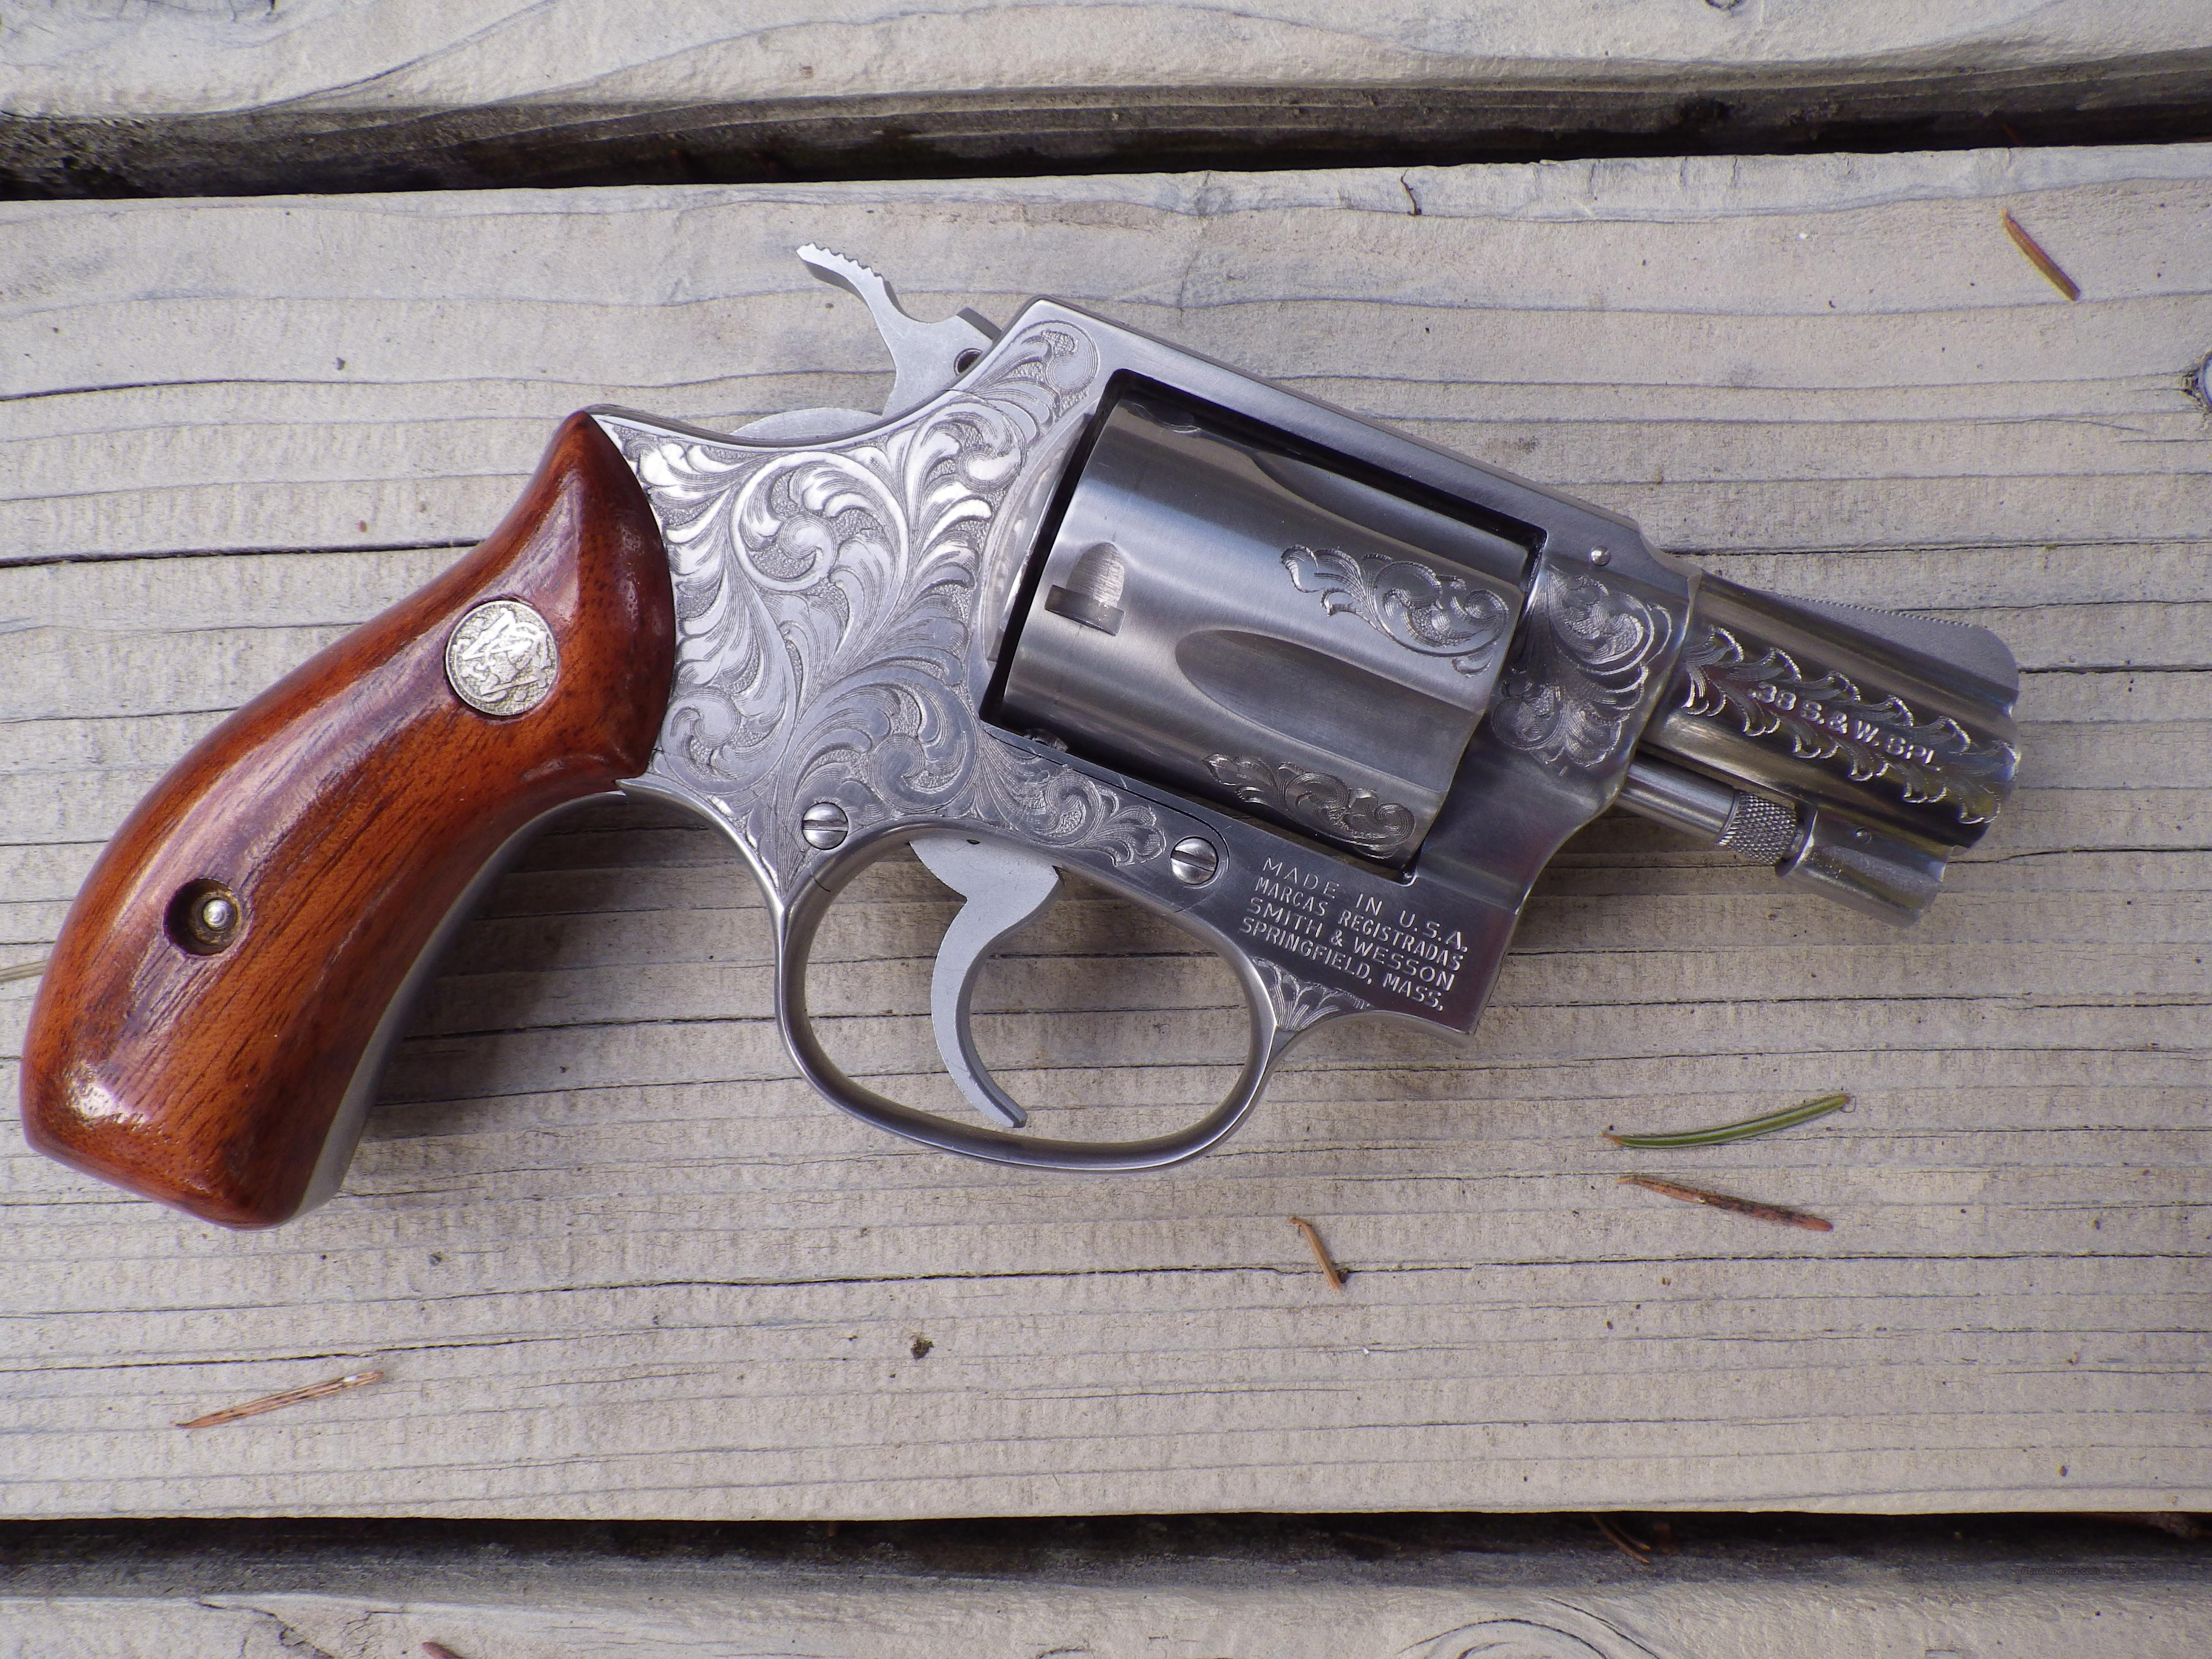 Smith & Wesson Factory Class A engraved Model 60 2-inch, 1980, unfired  Guns > Pistols > Smith & Wesson Revolvers > Full Frame Revolver